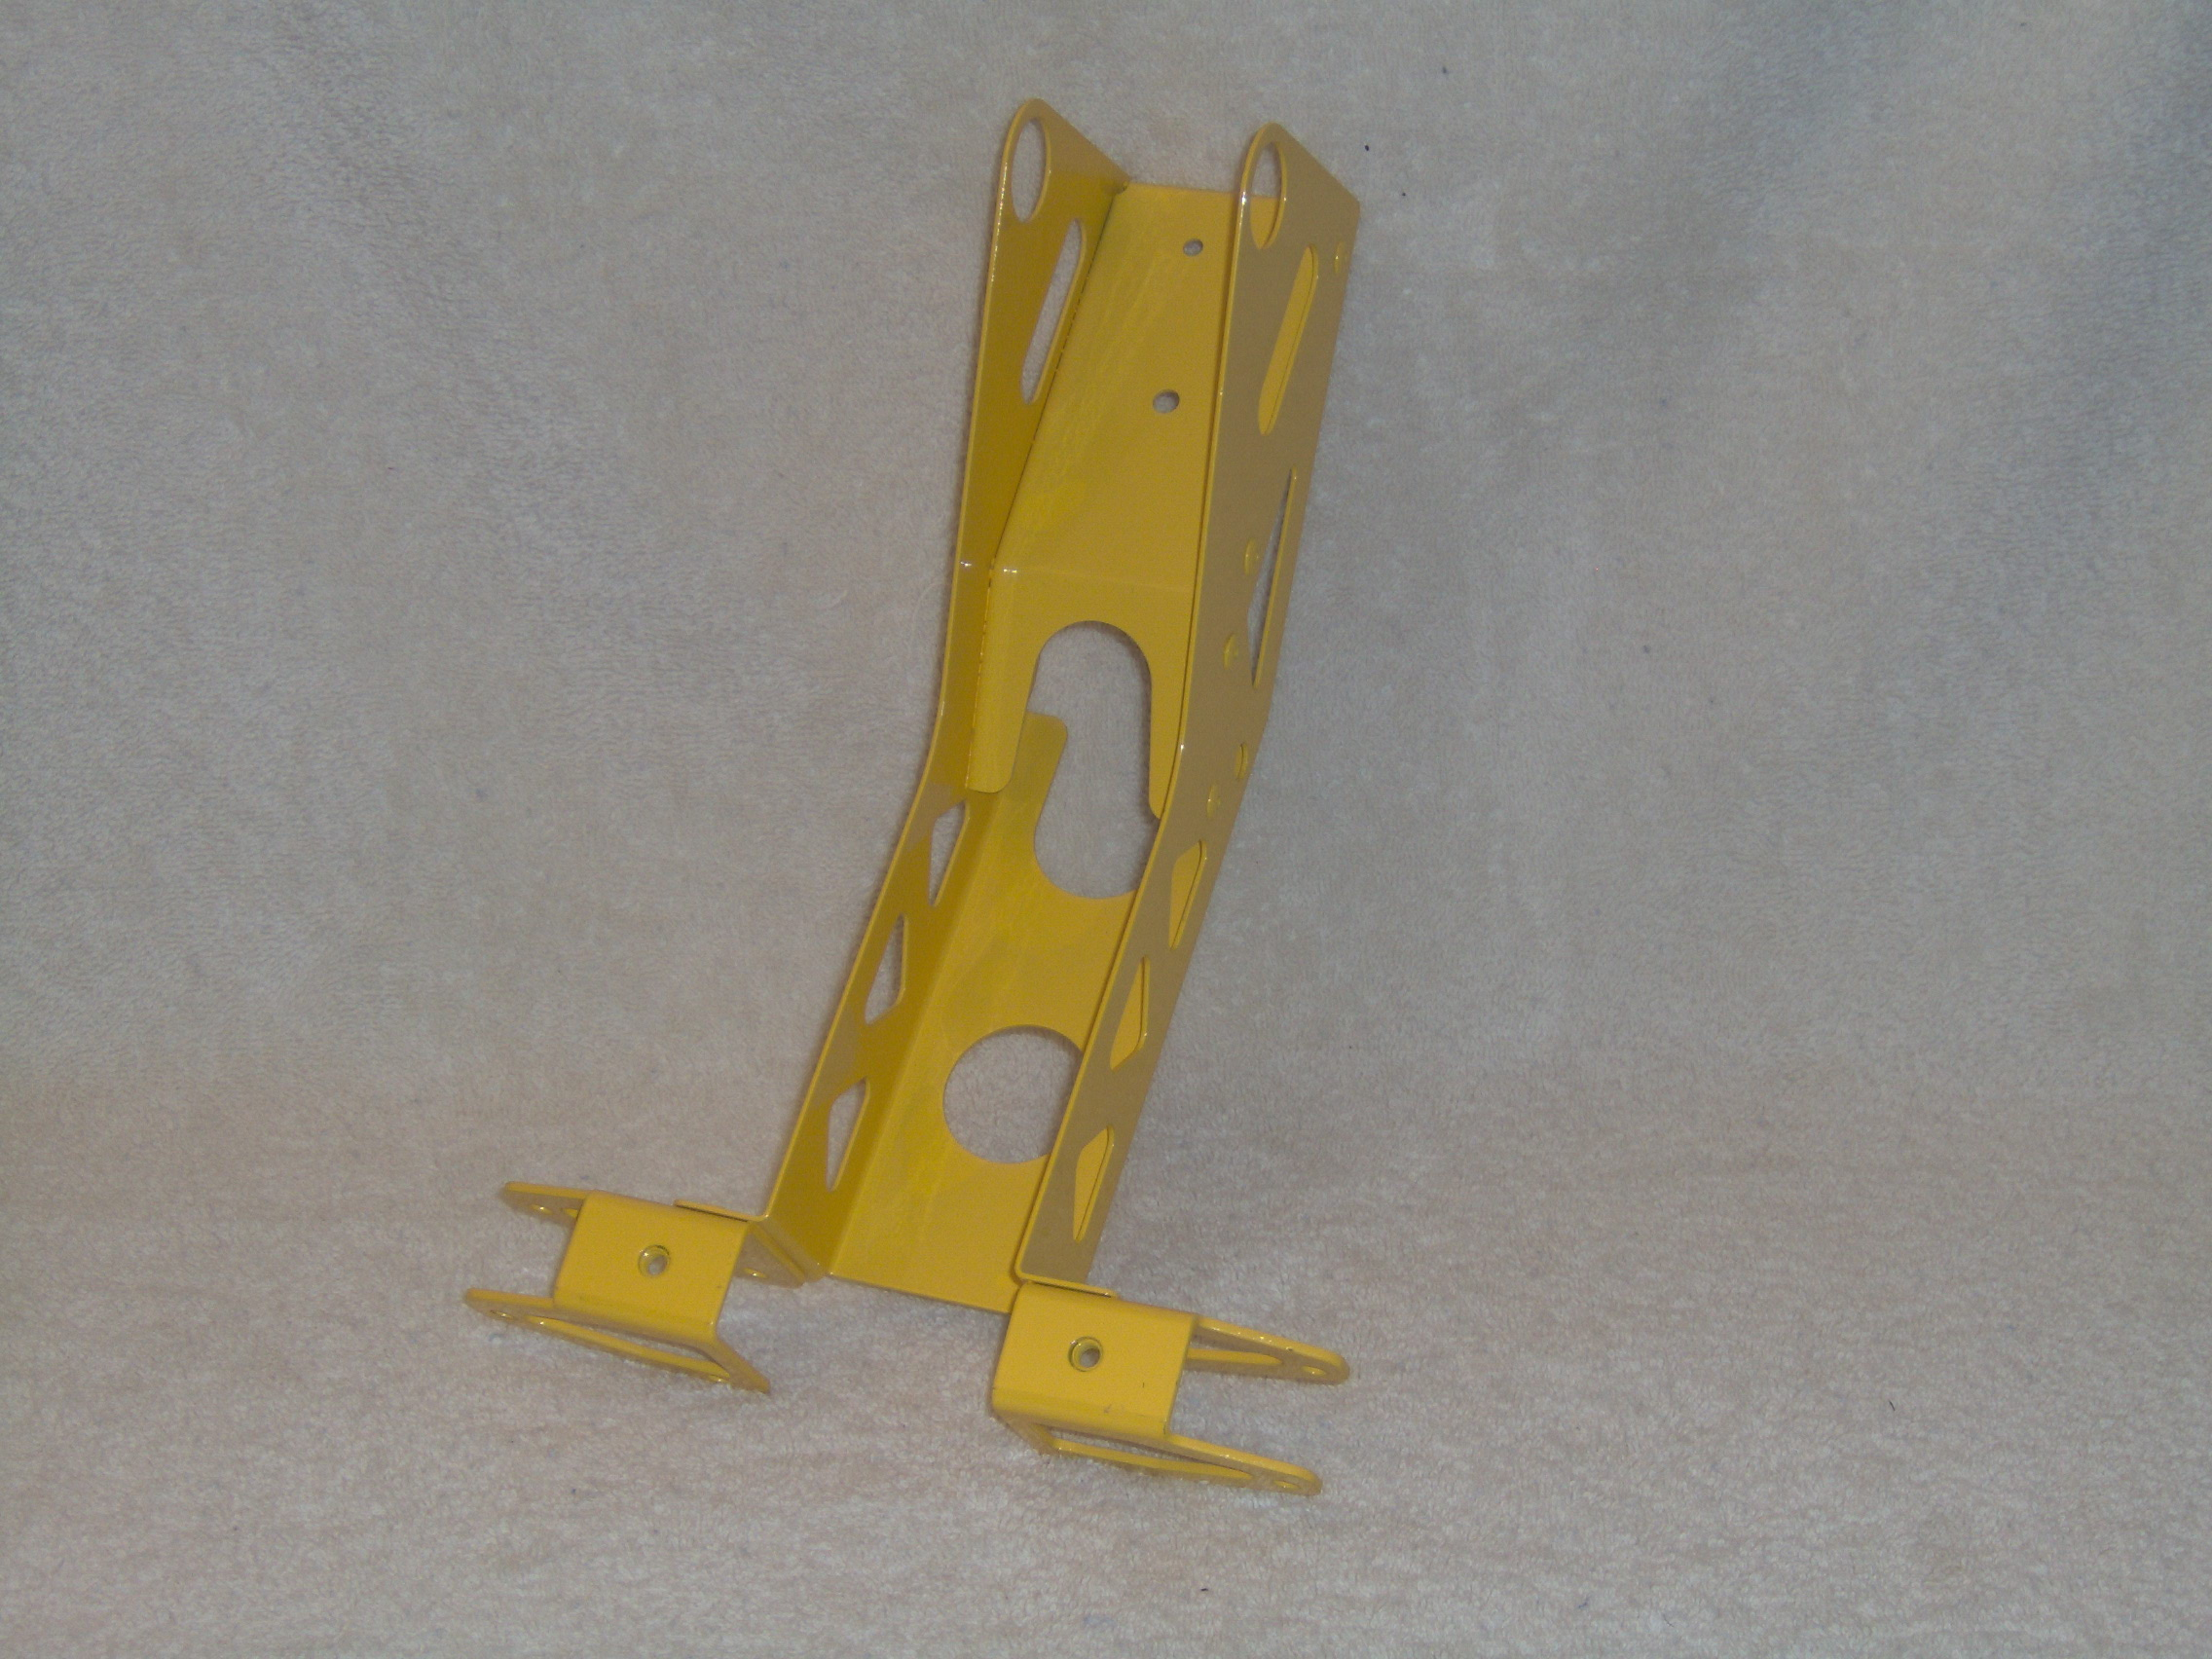 stryker stair chair manual portable wheel ramp fowler bracket weldment assembly cotdoc